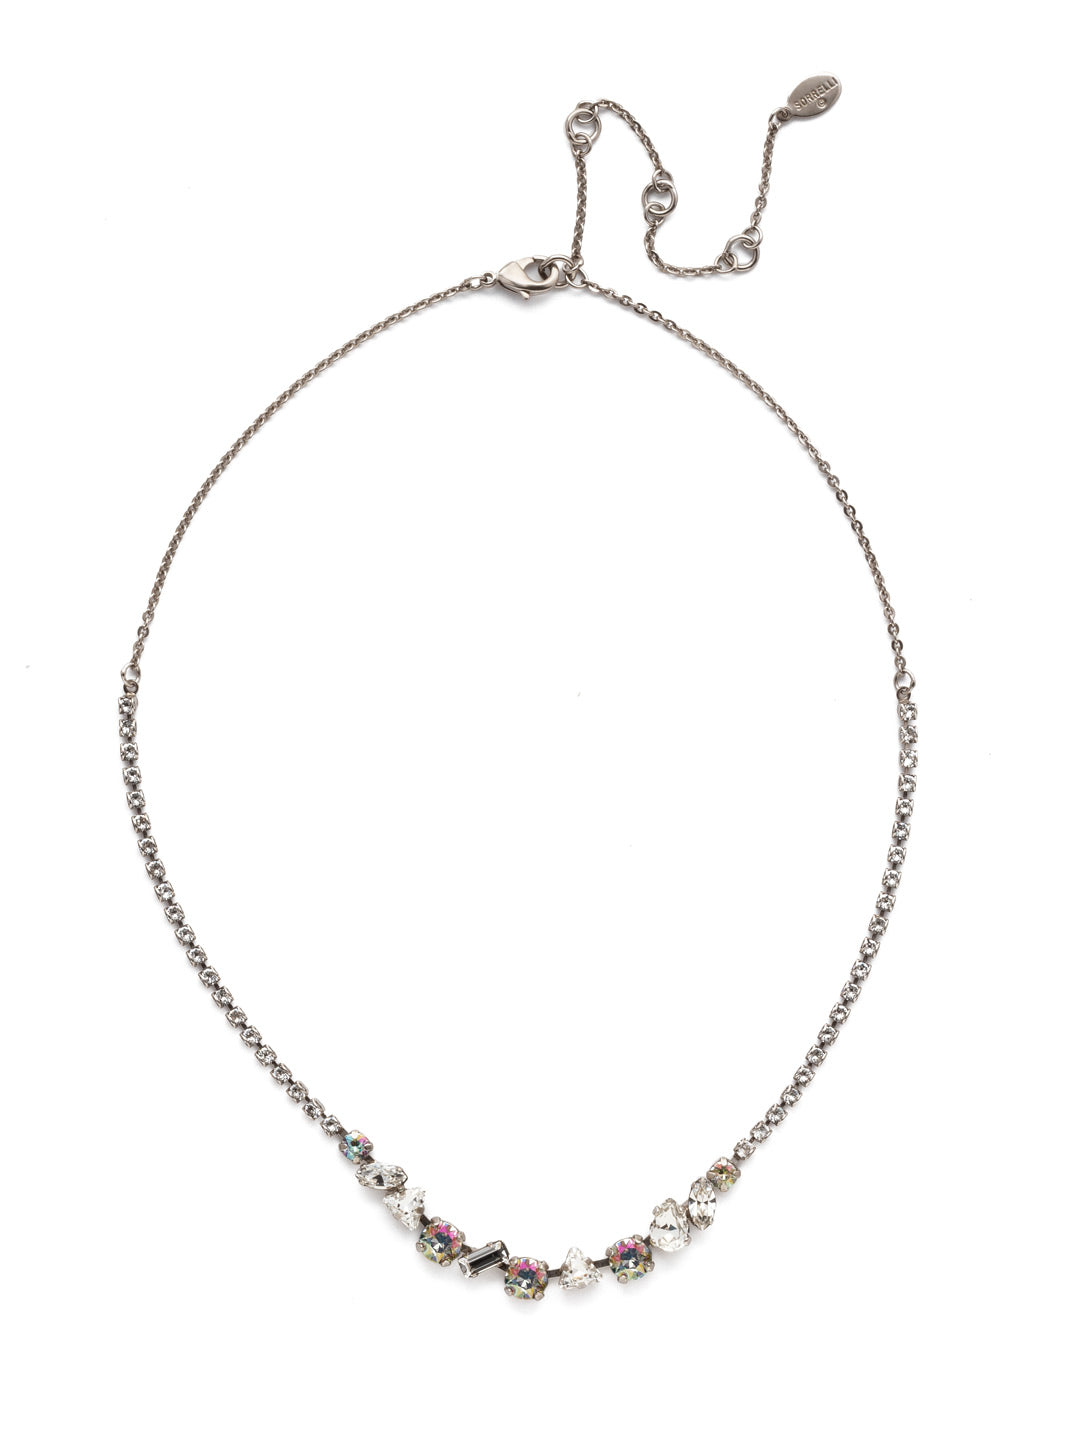 Cherished Tennis Necklace - NEK19ASCRE